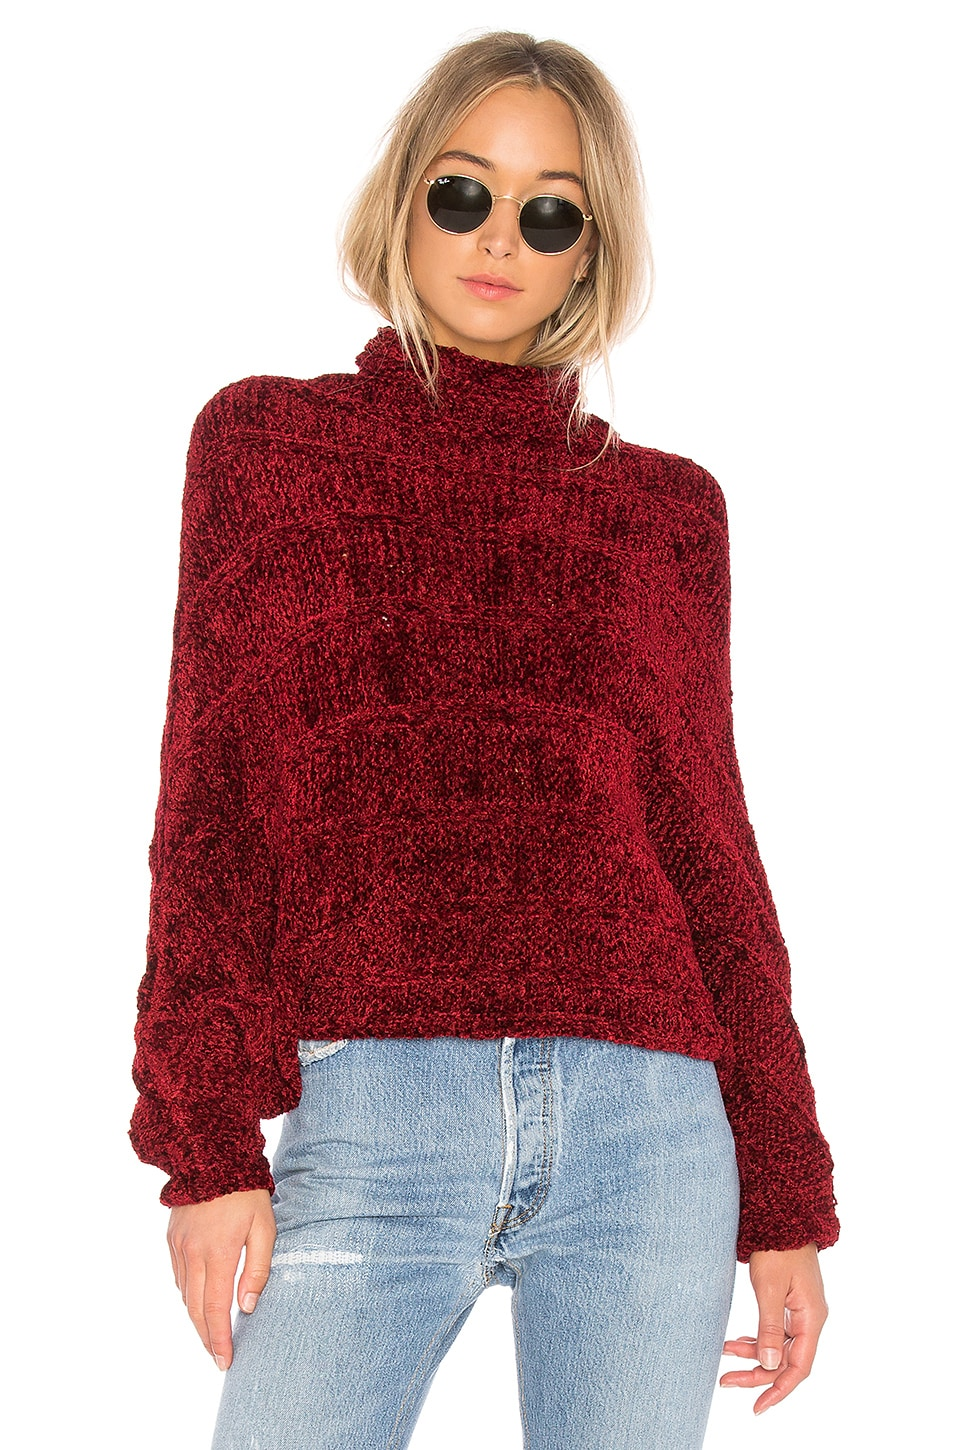 Free People Velvet Dreams Pullover Sweater in Wine